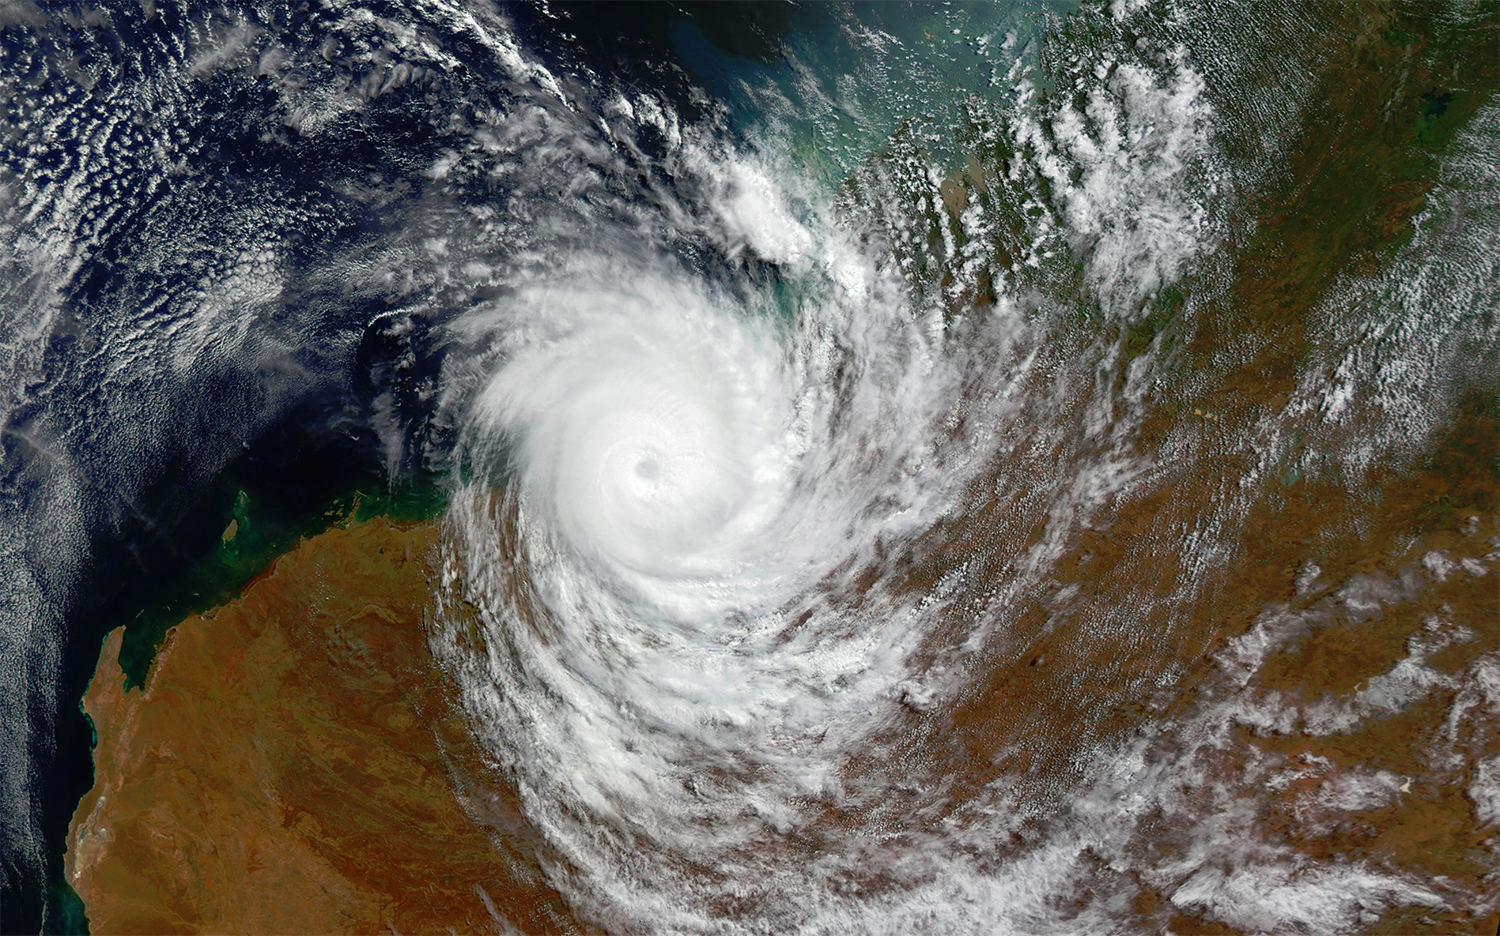 Satellite image of a cyclone during wet season in Australia